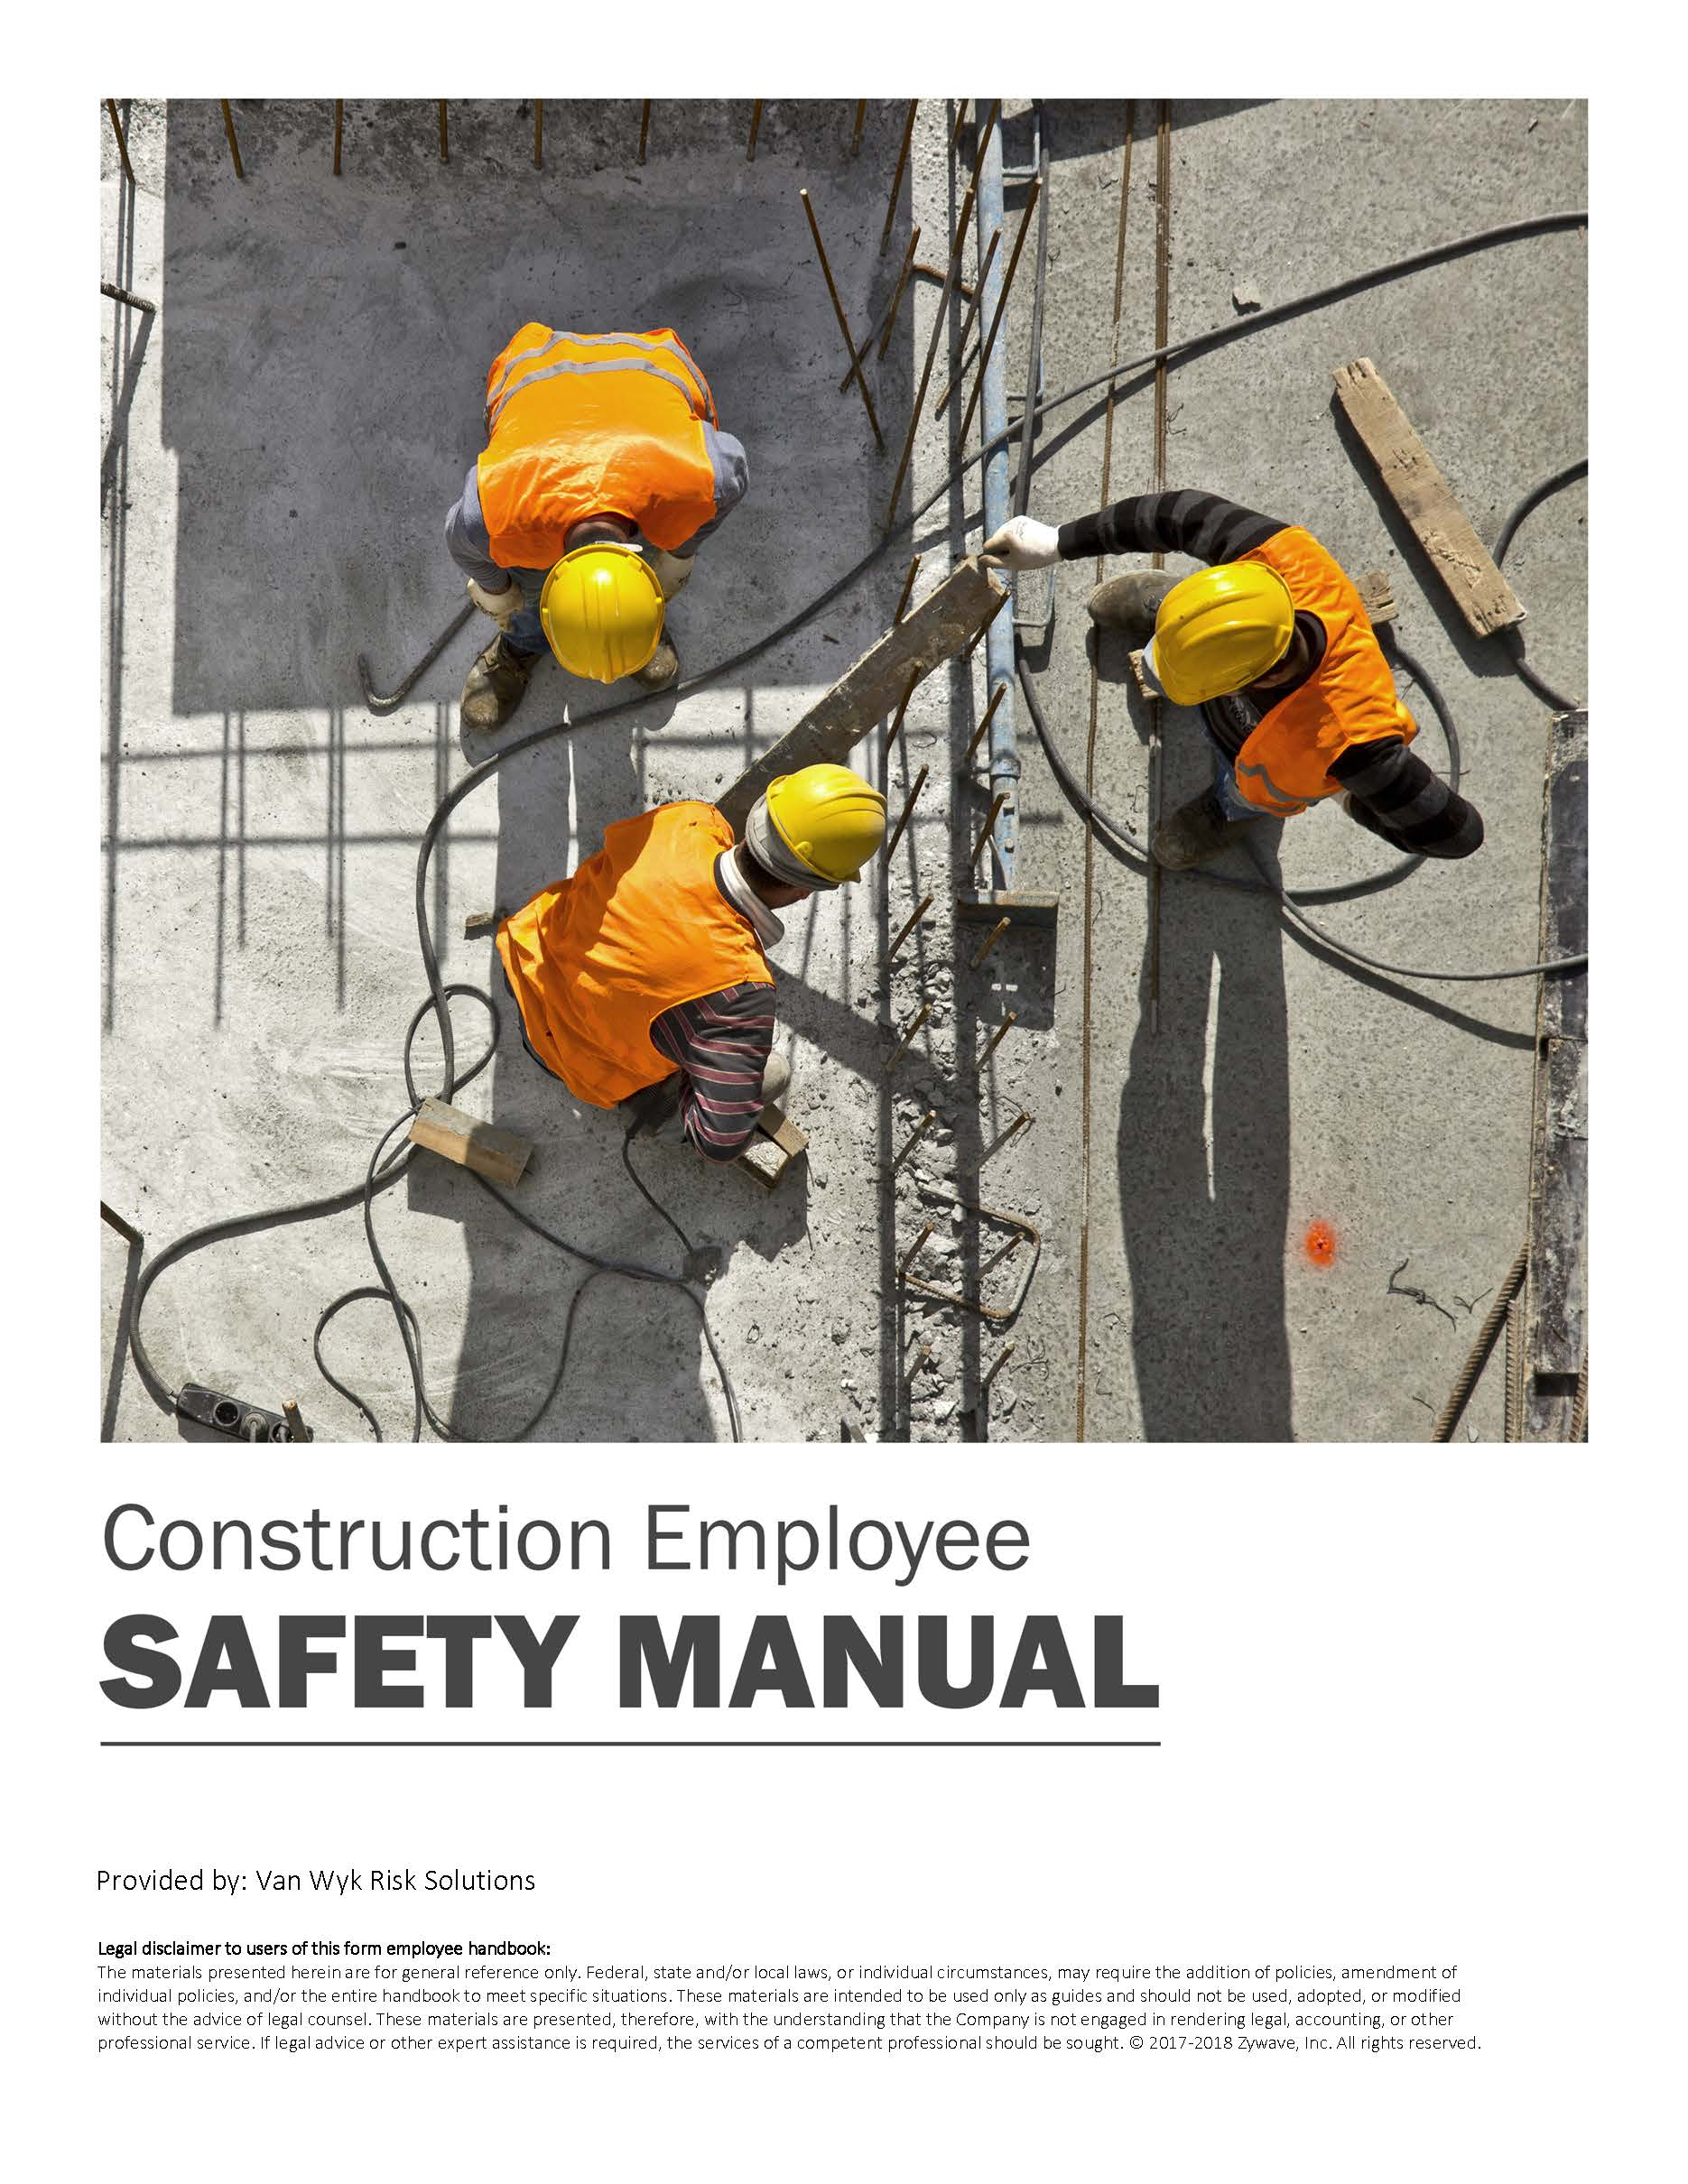 Construction Employee Safety Manual